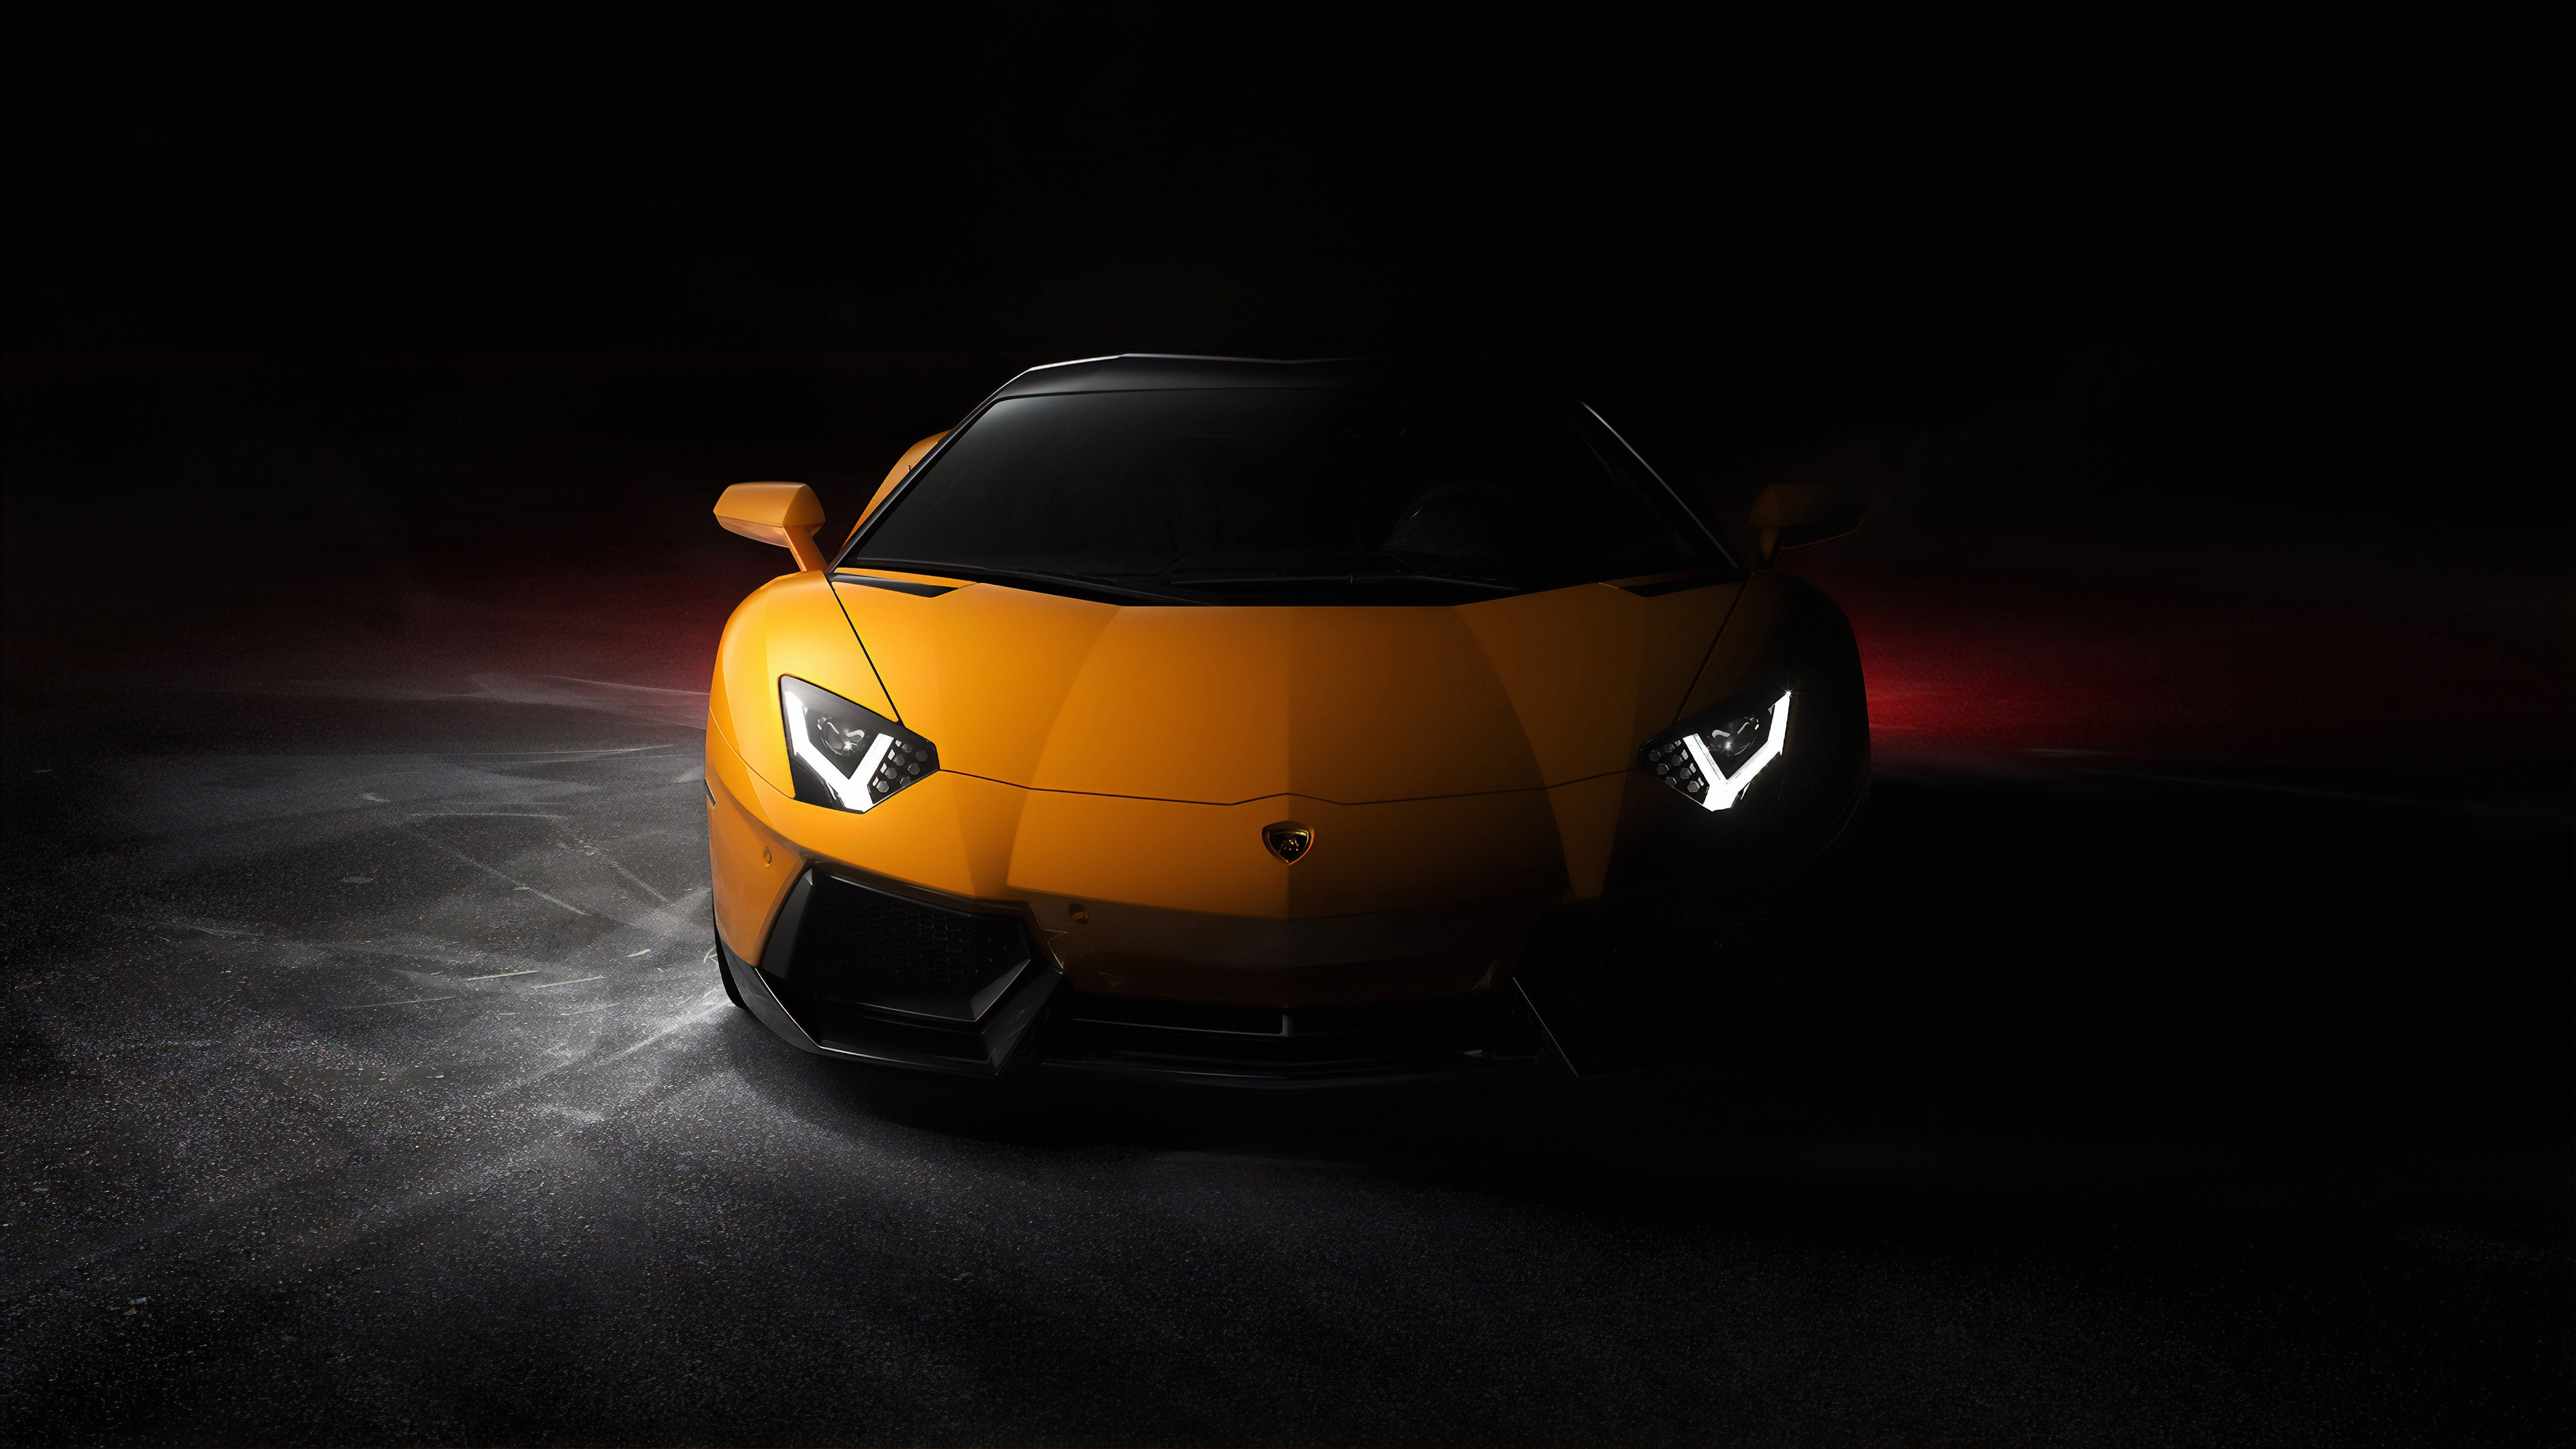 Lamborghini Aventador 4k Wallpaper Sports Cars Black Background Cars 1147